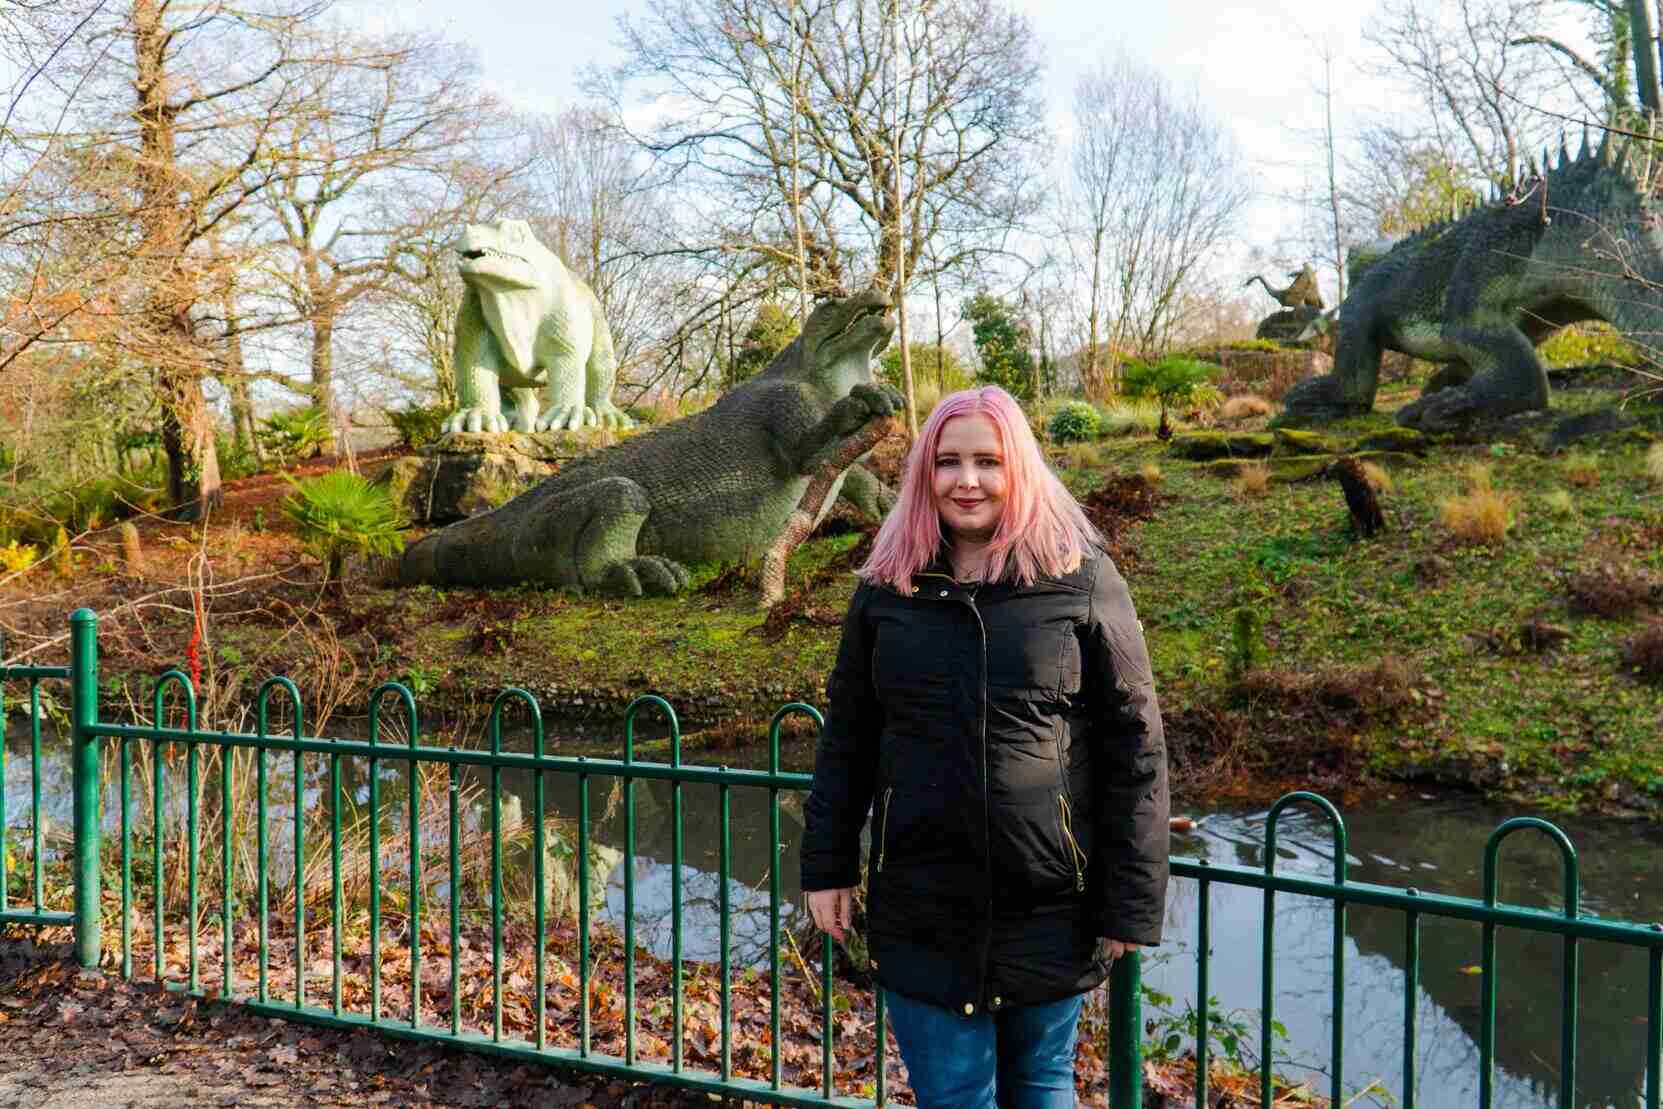 Kat standing in front of Crystal Palace Dinosaurs